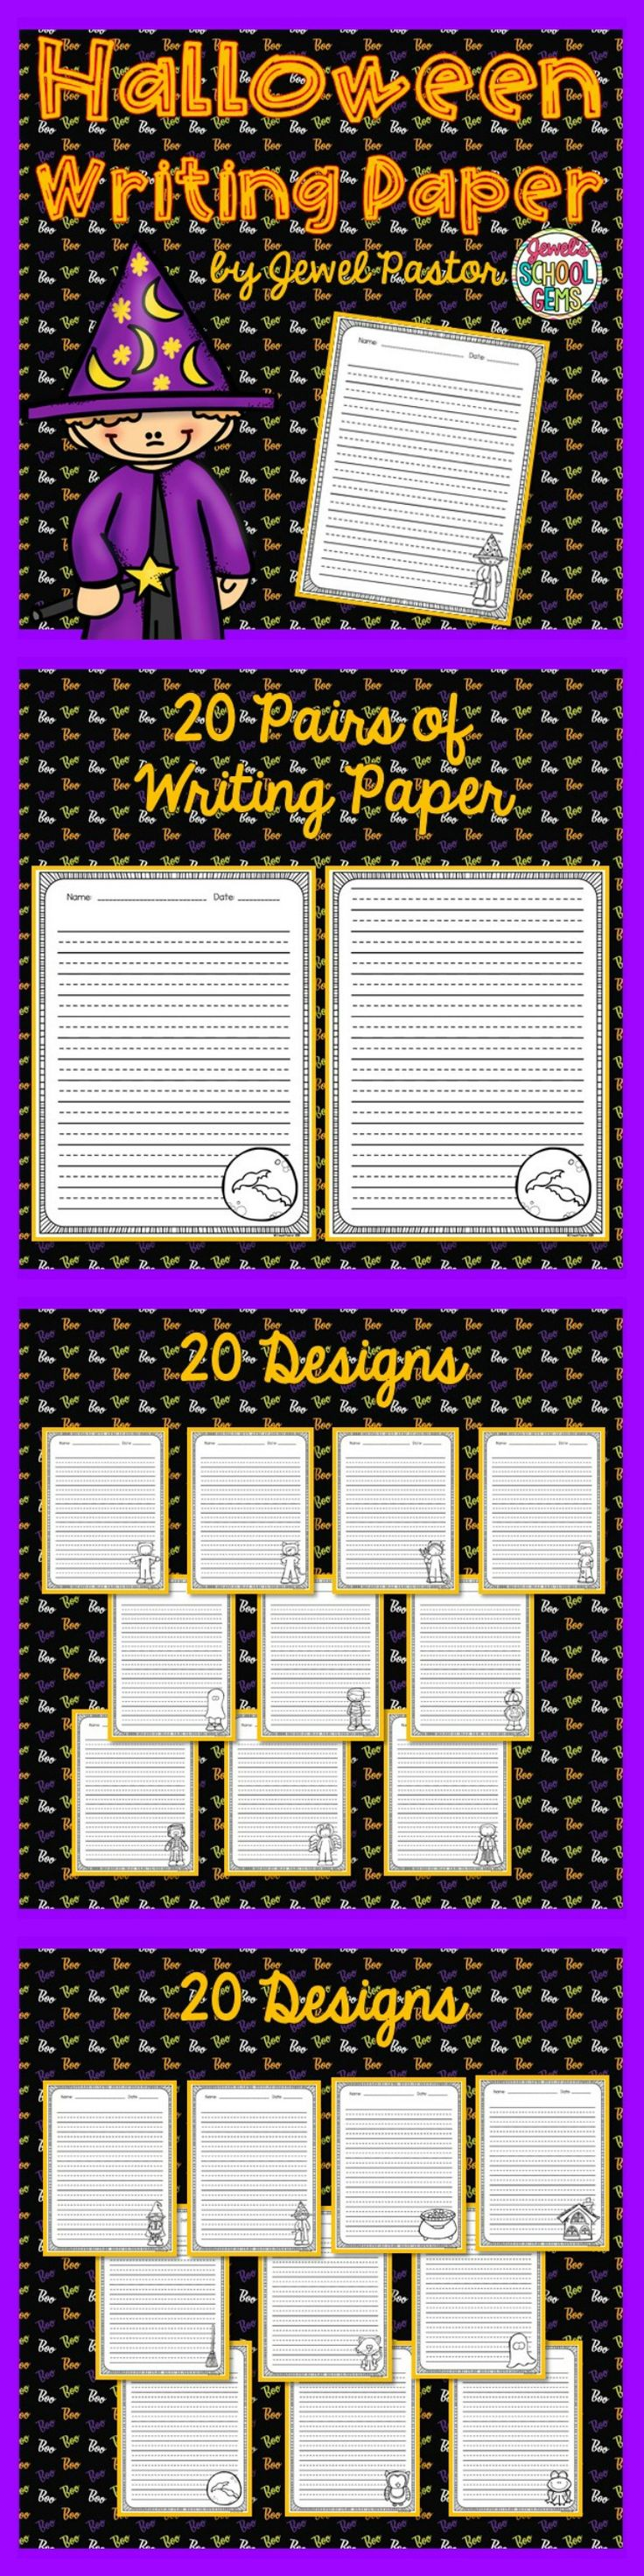 halloween writing paper for students